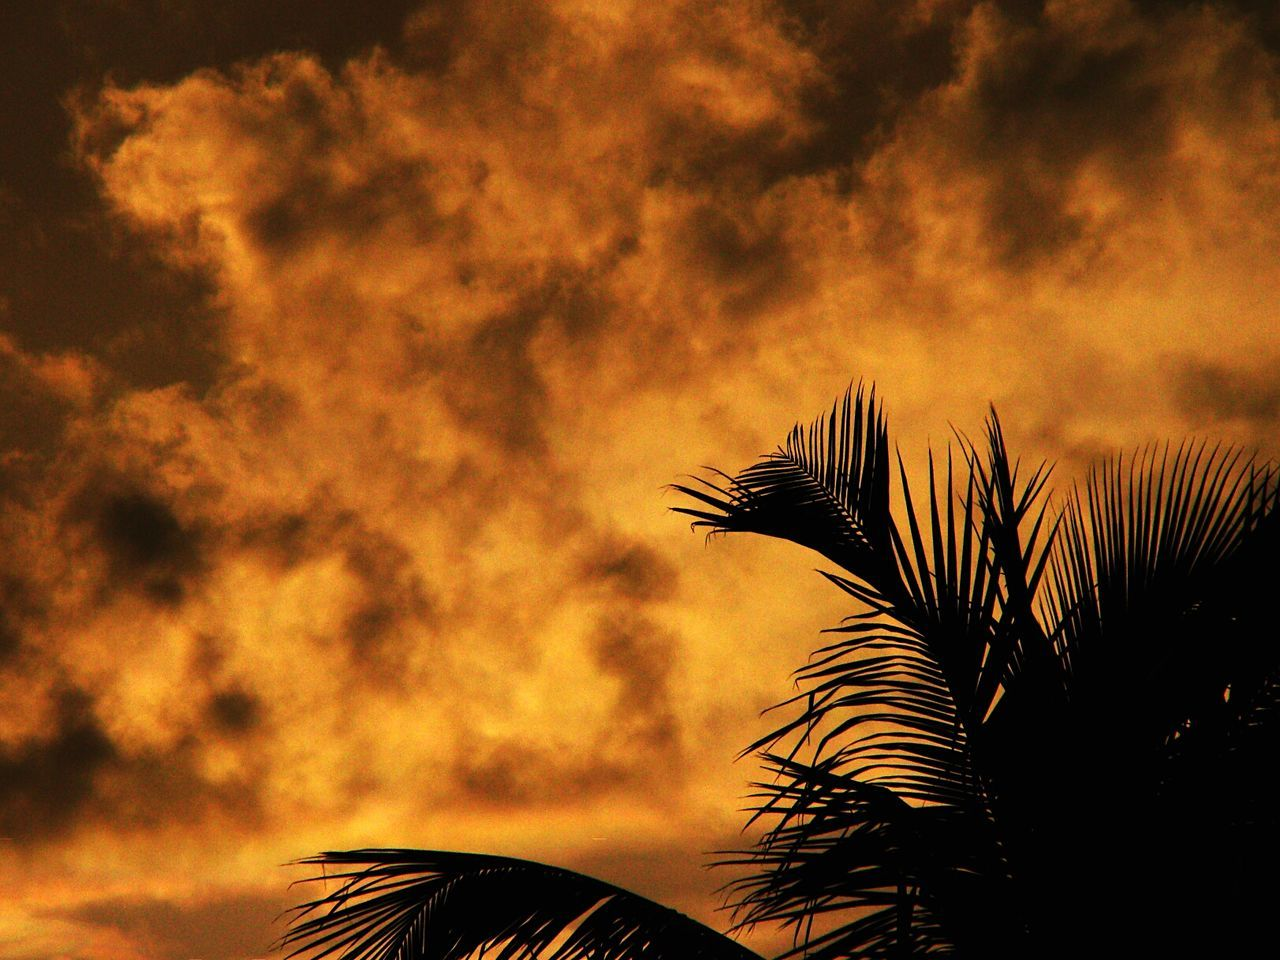 Silhouette of coconut palm tree leaves against fiery sunset sky. Silhouette Silhouette Of Leaves And Red Sky Fiery Sunset Fiery Fiery Sky Fiery Skies Fiery Evening Orange Sky Red Sky At Sunset Sunset Silhouettes Dramatic Sky Dramatic Clouds Dramatic Edit Dramatic Sunset Painting Goa Monsoon Sky Goa India Silhouettes And Shadows Nature Is Art Evening Warm Colors Burning Sky Coconut Tree Leaves Drastic Edit